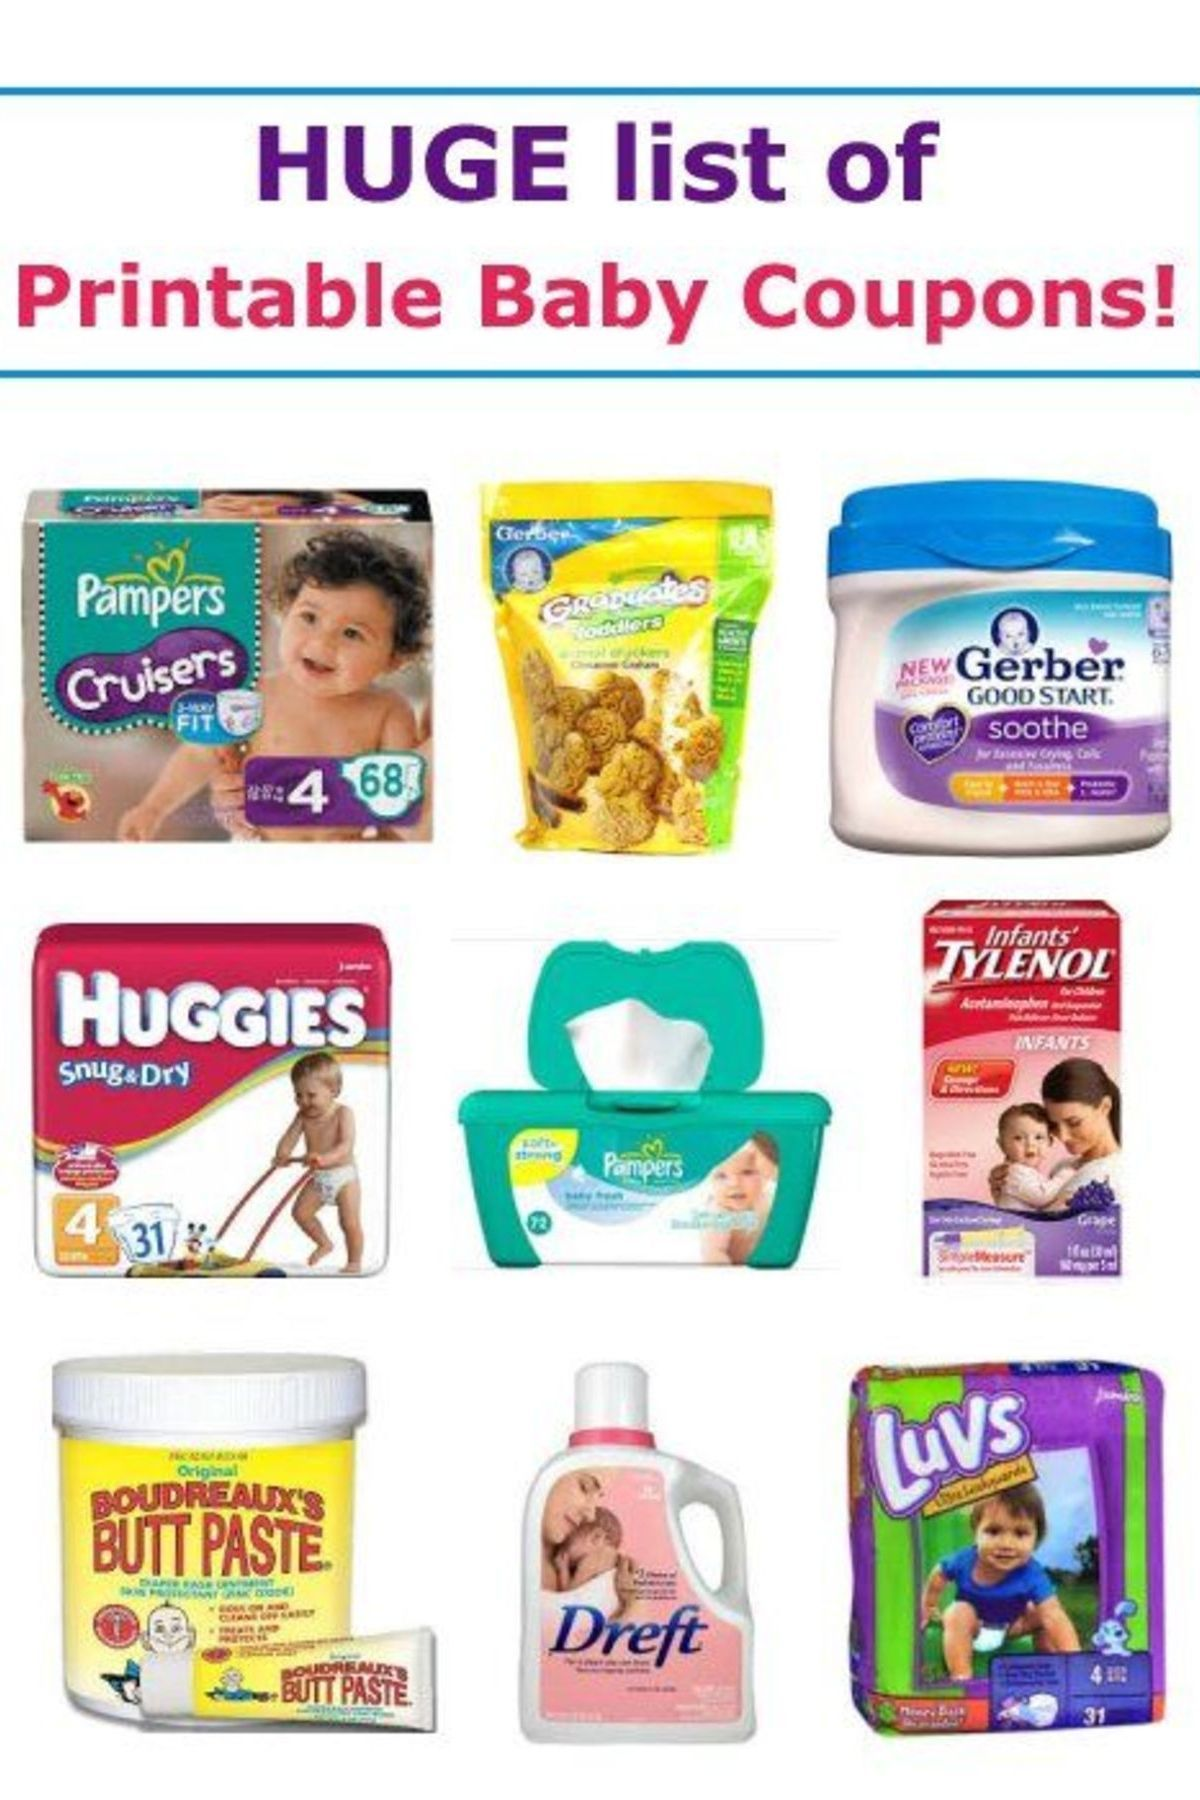 17 Printable Baby Coupons Baby coupons, Diaper coupon